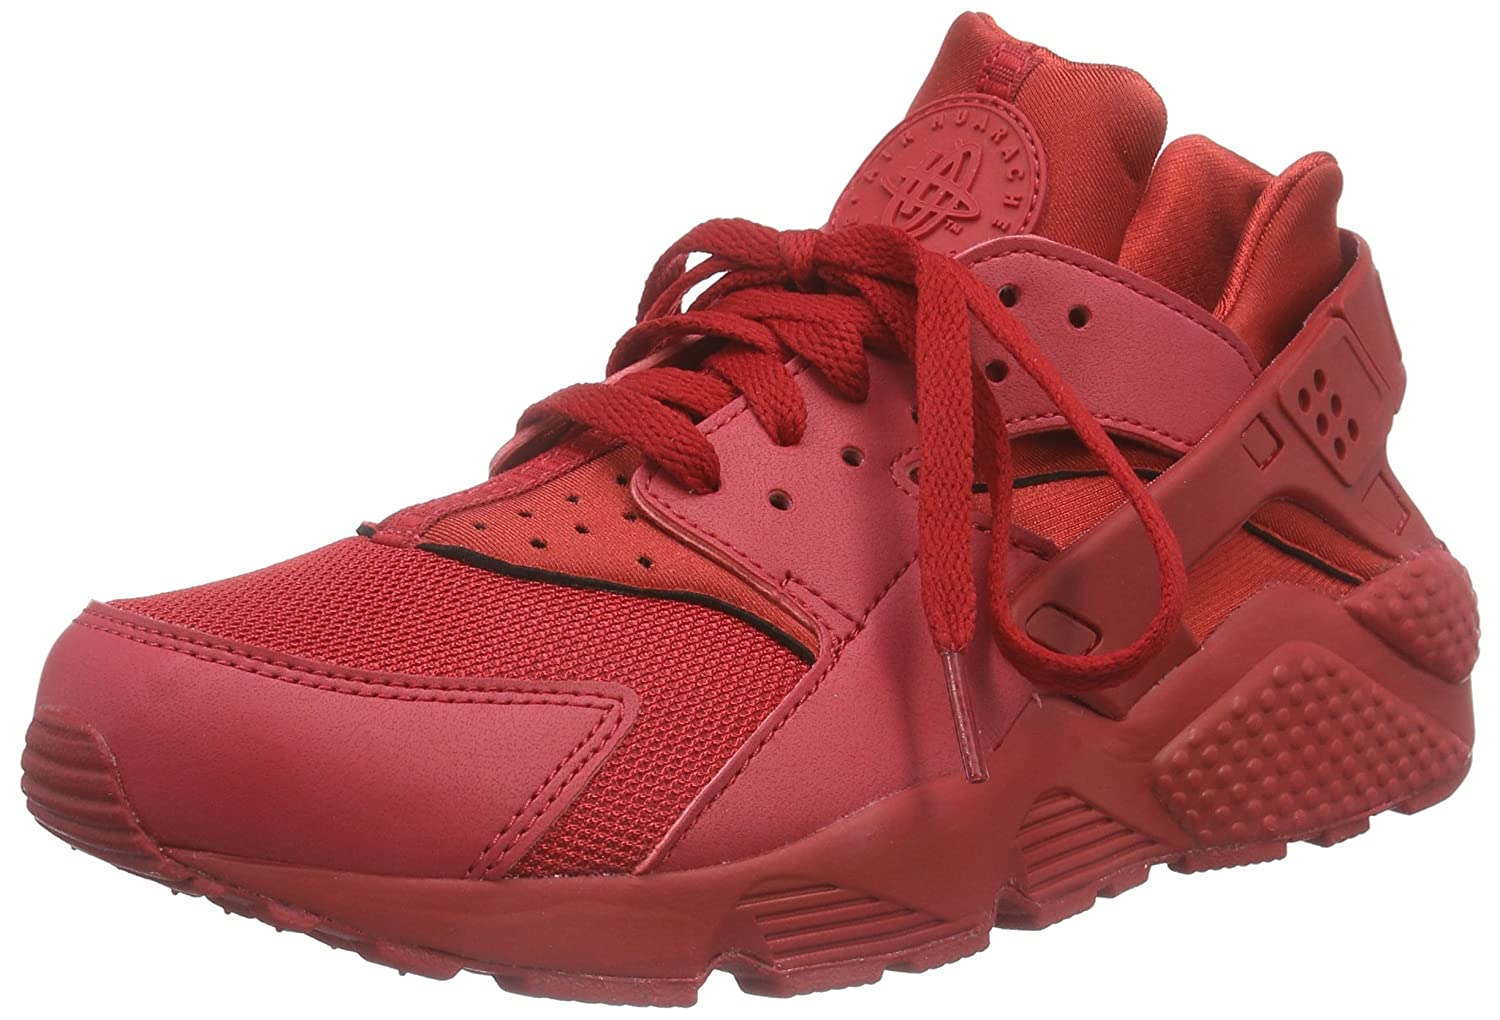 new style 12e91 b5be7 Amazon.com  Nike Men s Air Huarache Running Shoe  Nike  Shoes